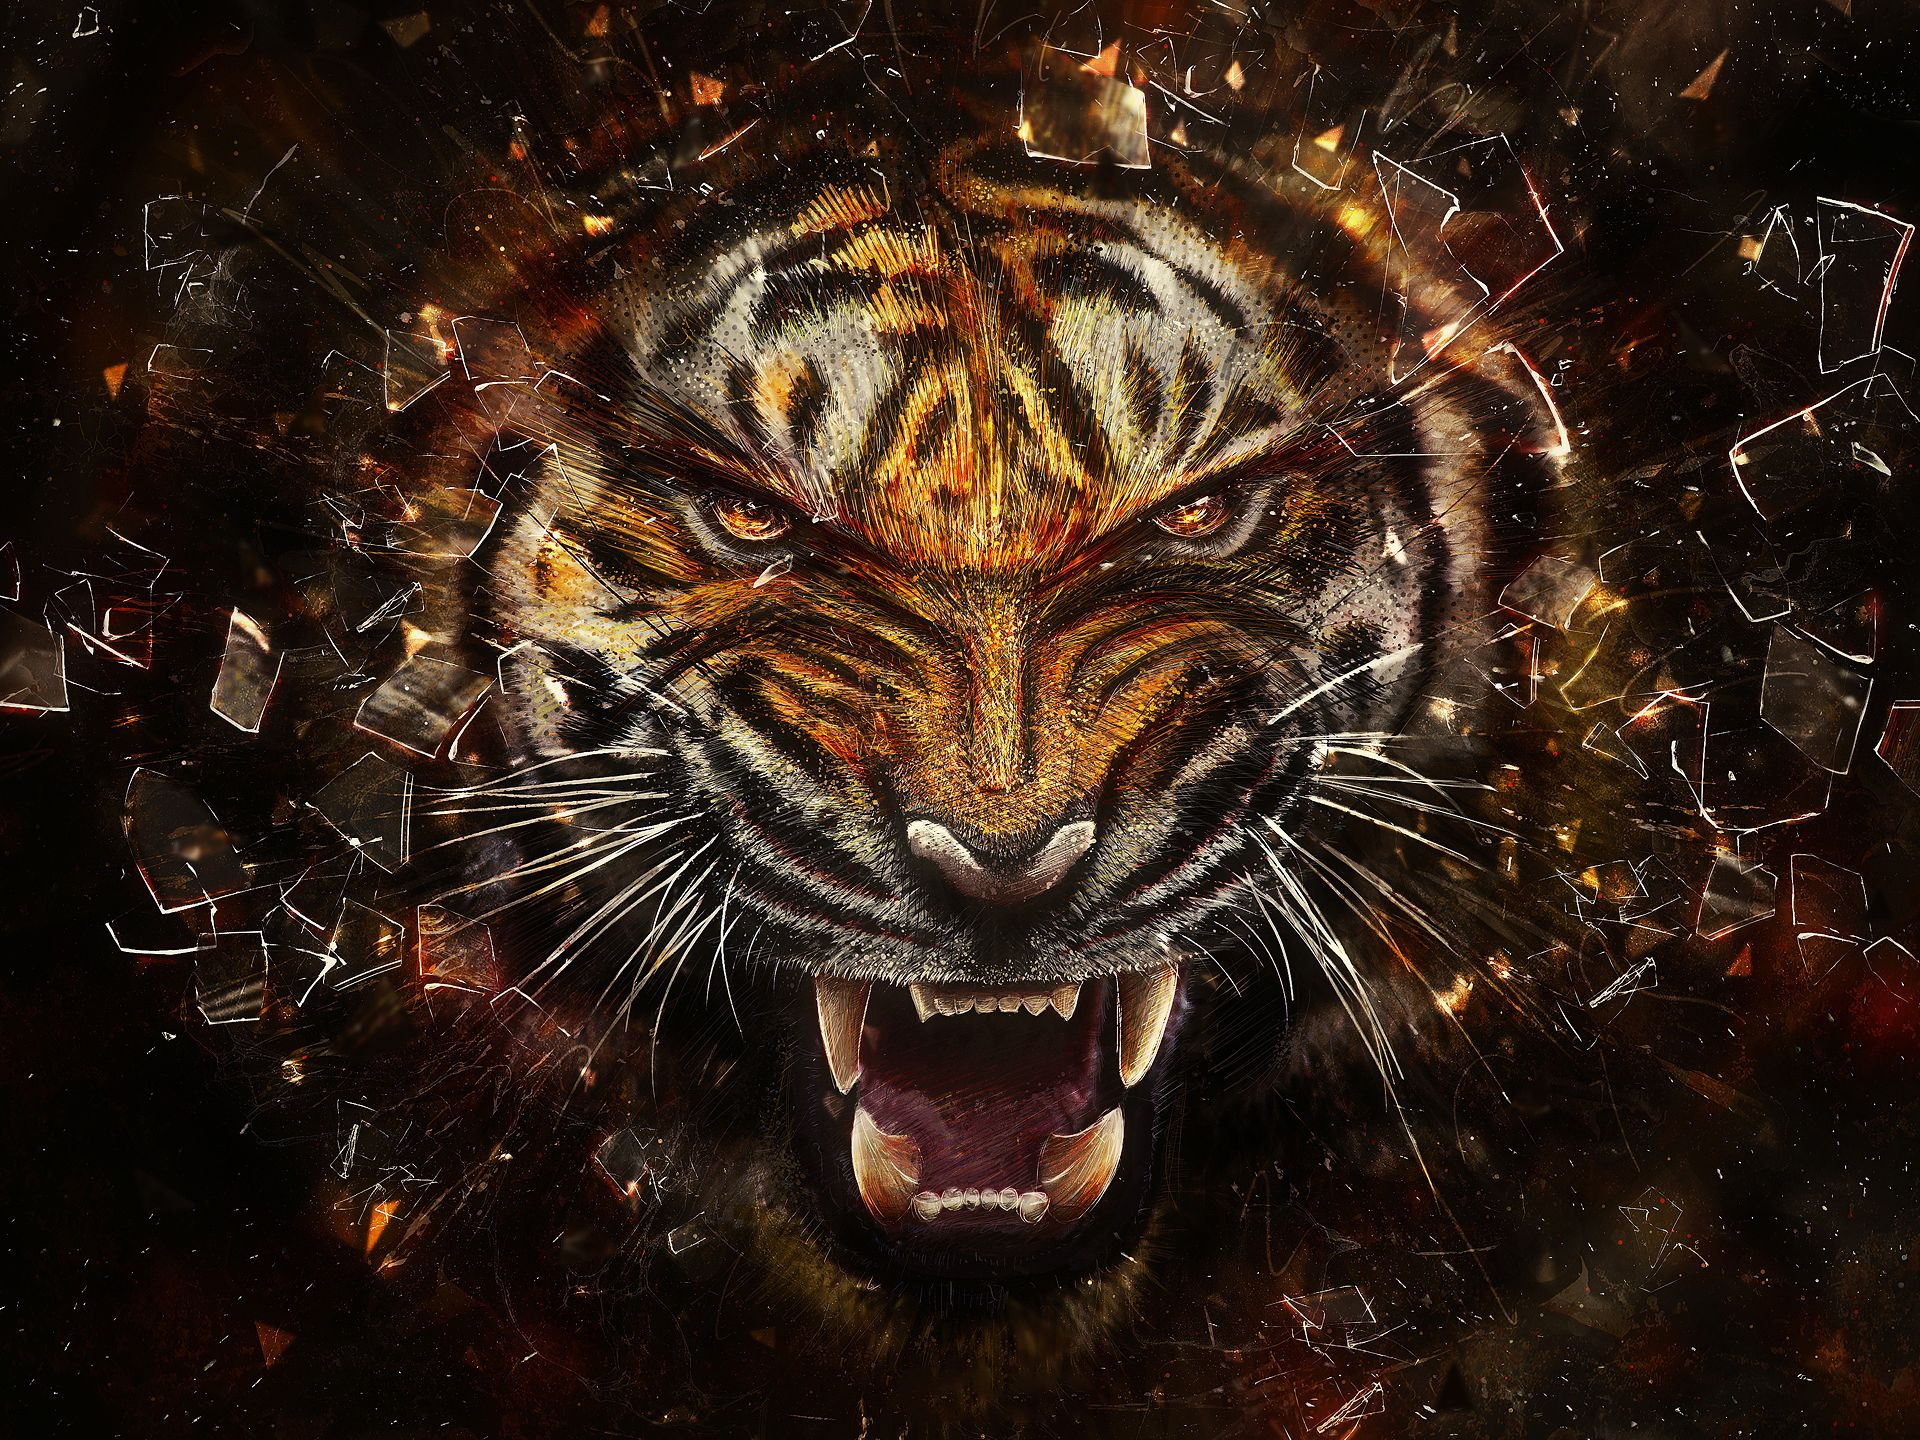 Angry Tiger   Tigers Wallpaper 31737545 1920x1440